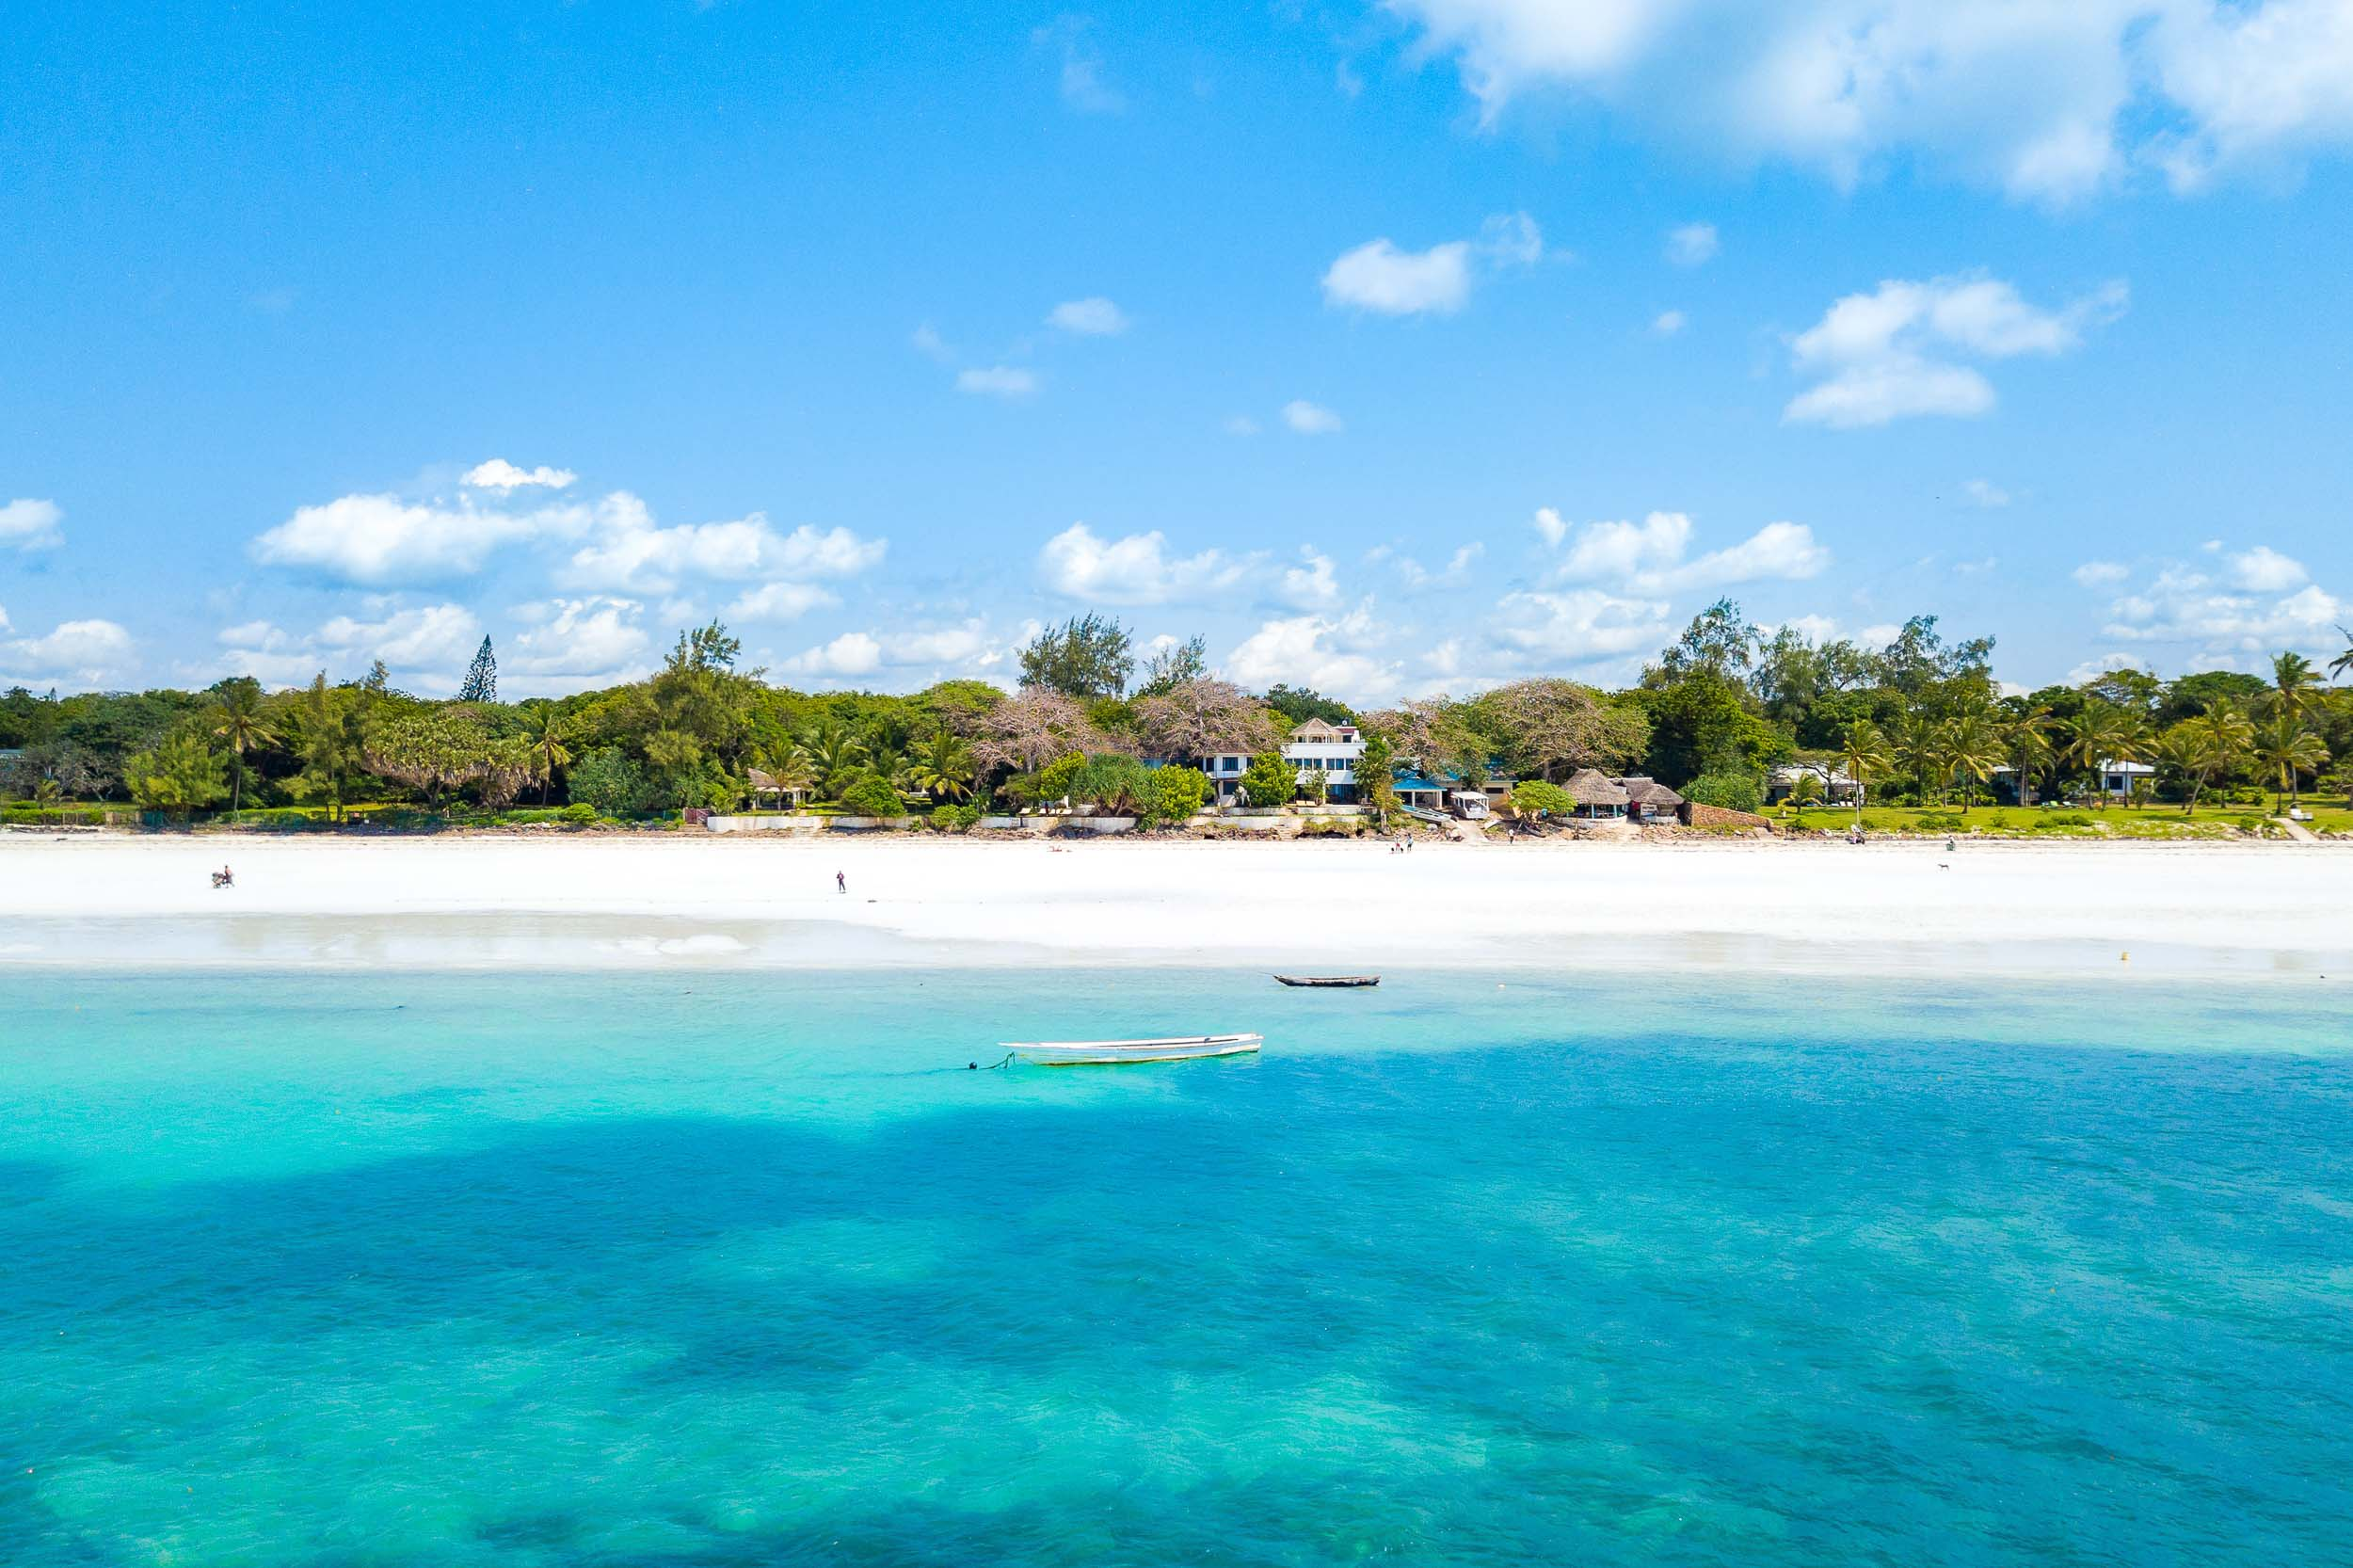 Tequila Sunrise - Diani Beach (Galu)Sleeps 6 Adults + 2 kidsKES 45,000 per day